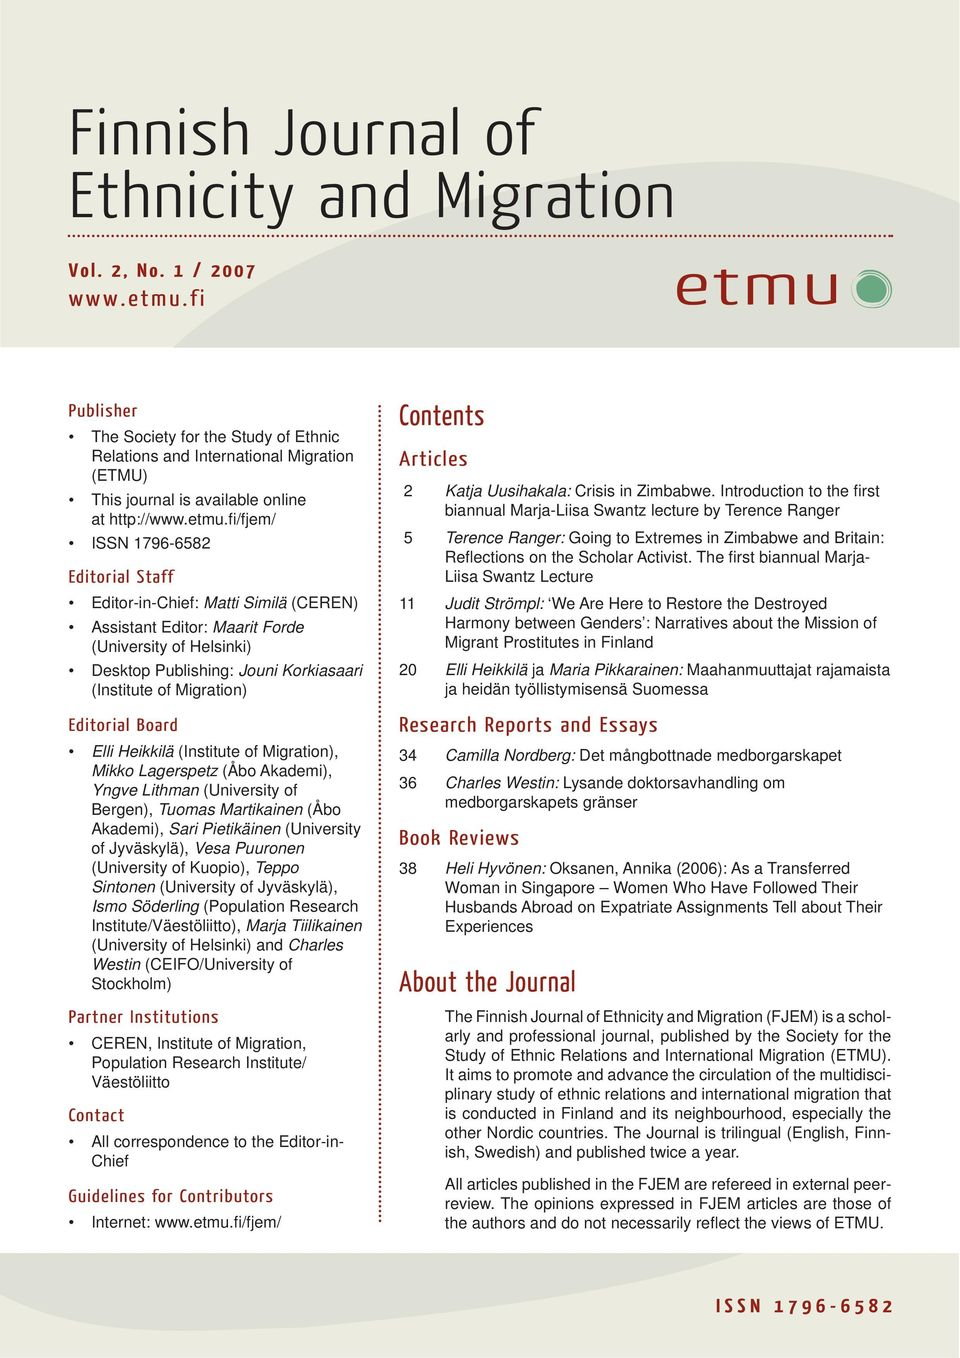 fi /fjem/ ISSN 1796-6582 Editorial Staff Editor-in-Chief: Matti Similä (CEREN) Assistant Editor: Maarit Forde (University of Helsinki) Desktop Publishing: Jouni Korkiasaari (Institute of Migration)